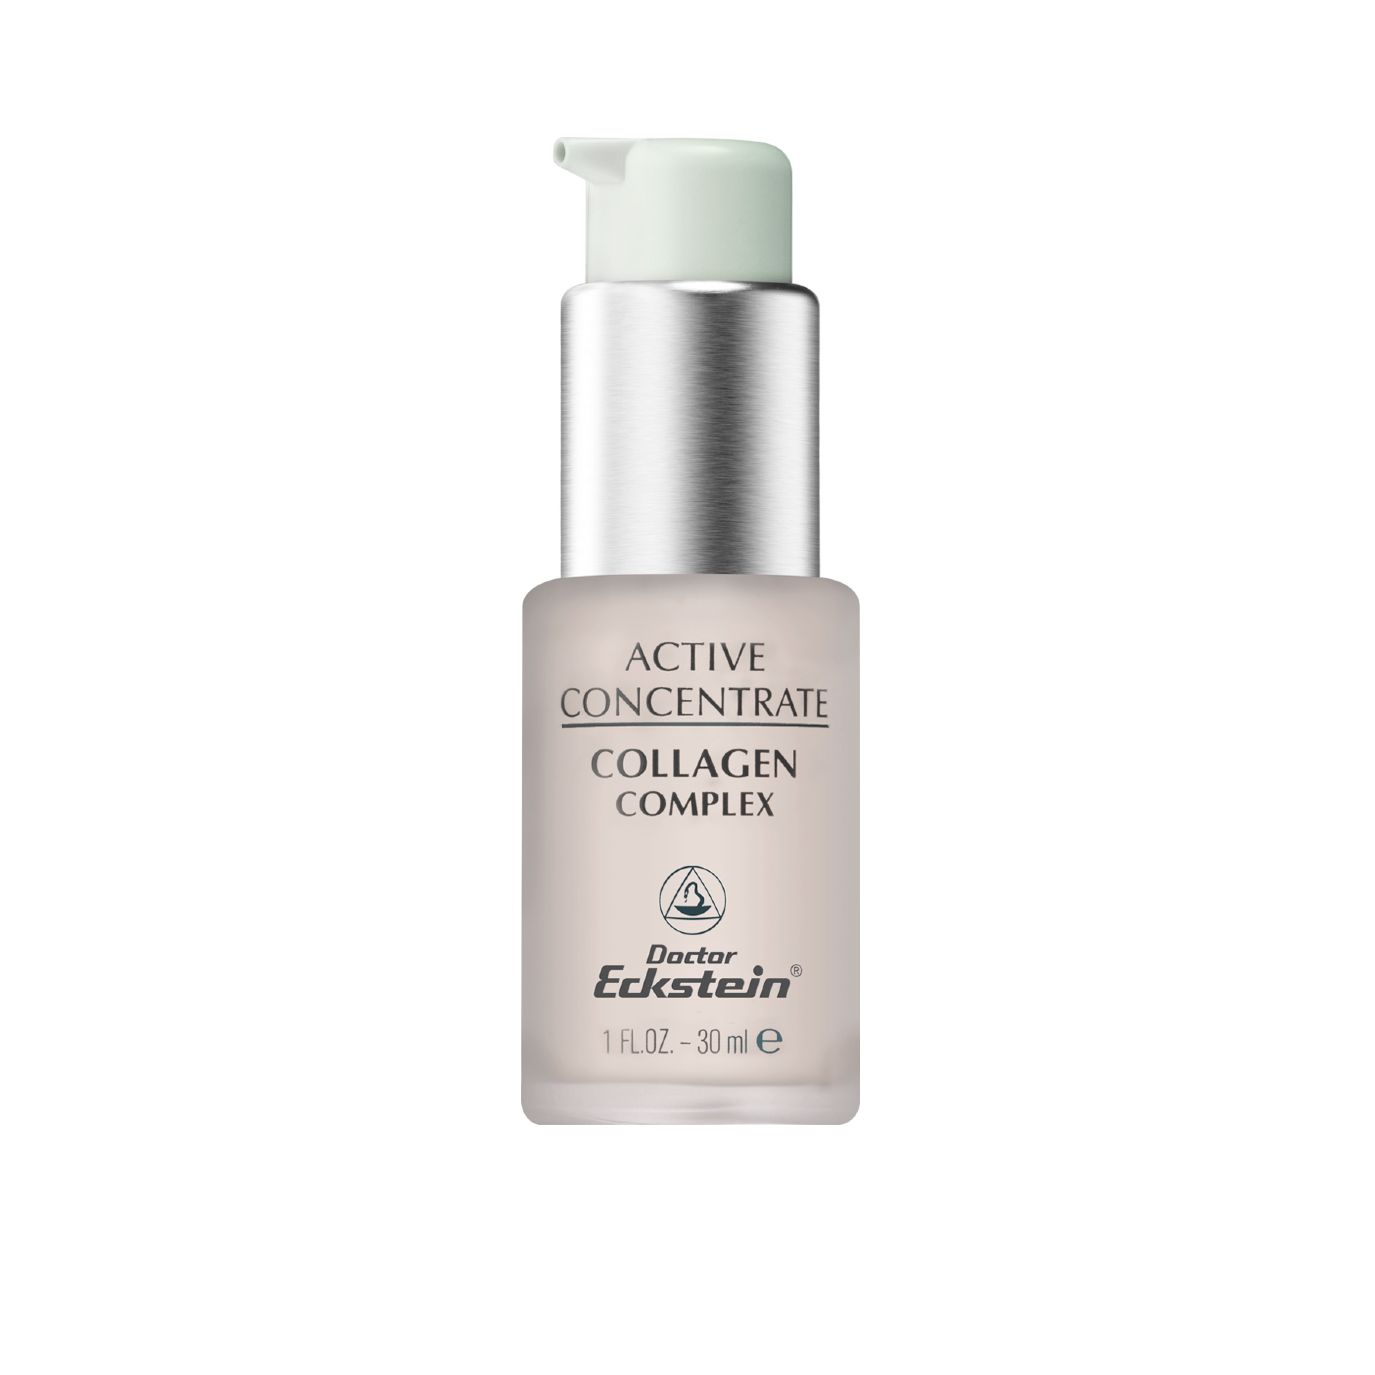 Active Concentrate Collagen Complex